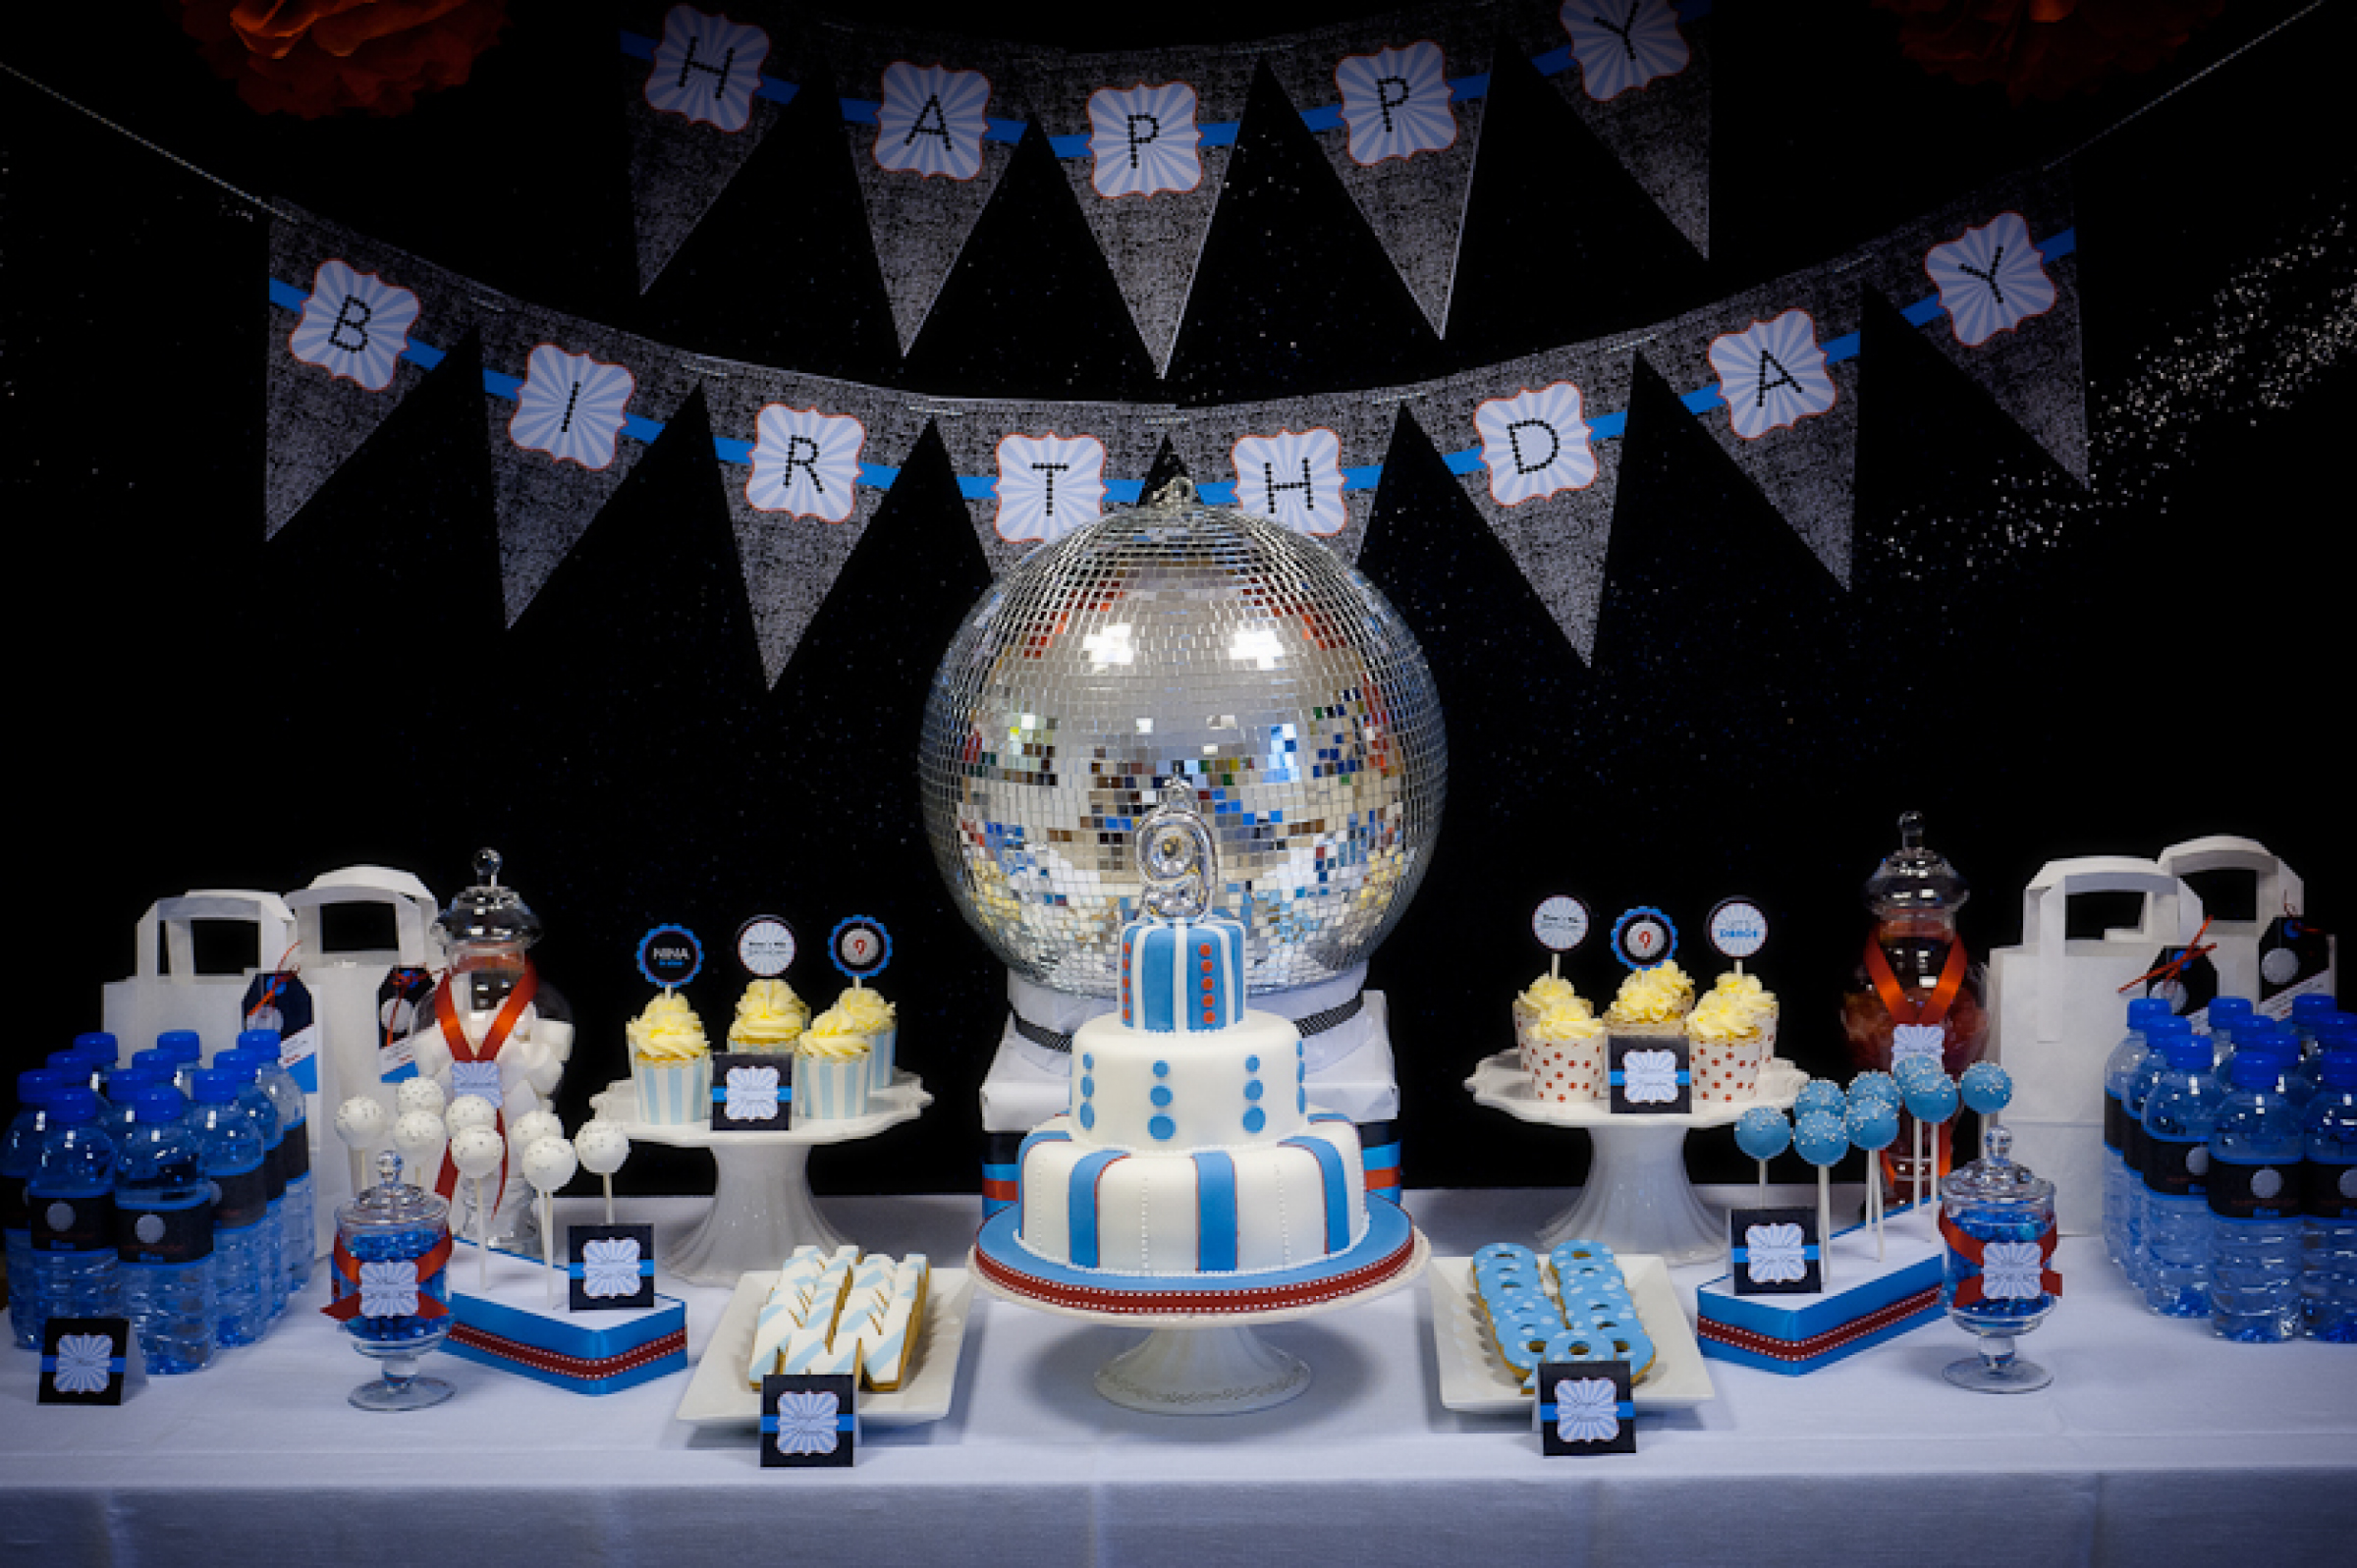 a glam disco party - Disco Party Decorations